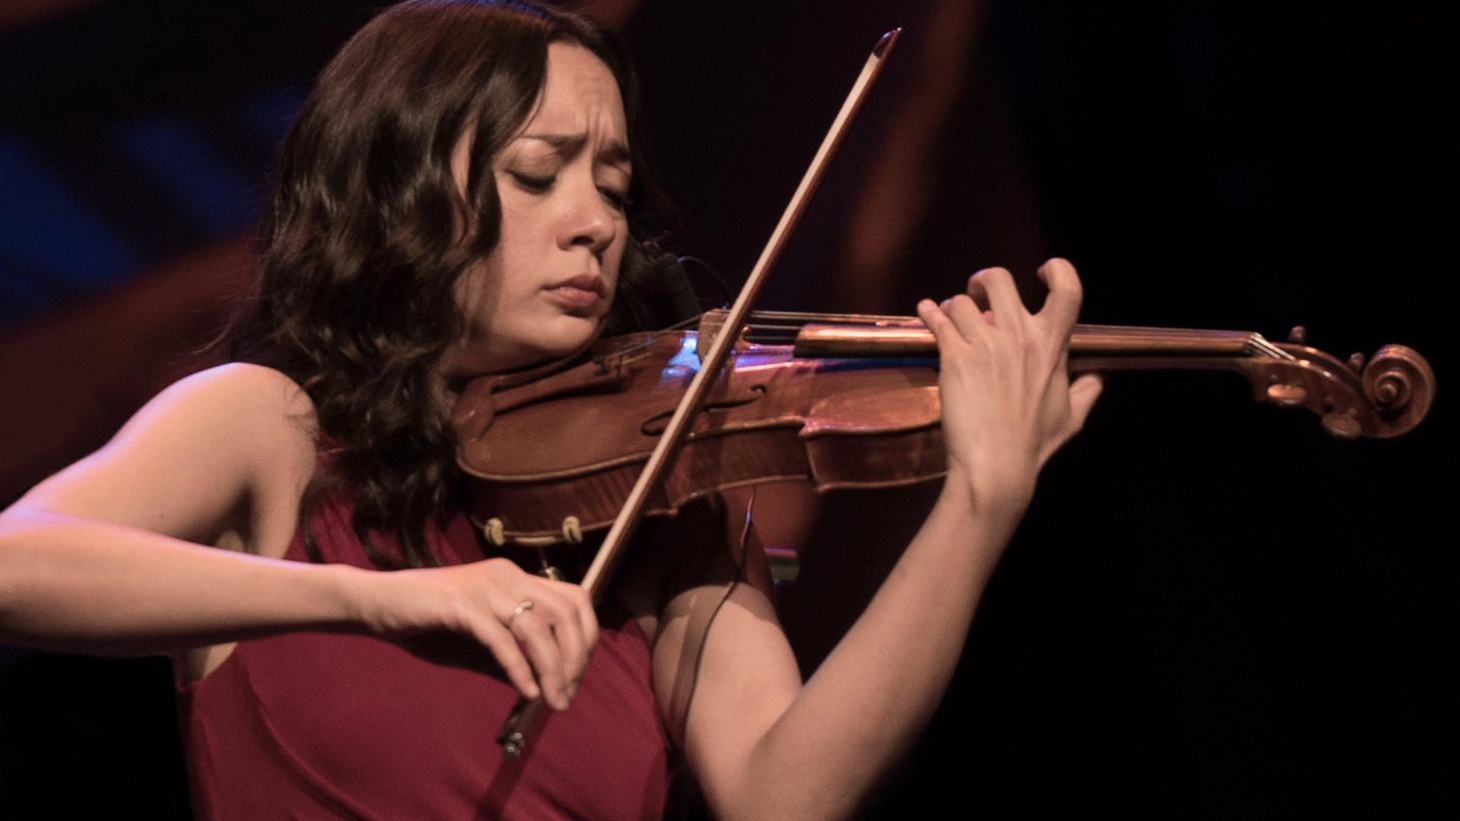 Violinist and actress Lucia Micarelli visits The Treatment to discuss her emotive performances as she prepares for PBS' An Evening with Lucia Micarelli.